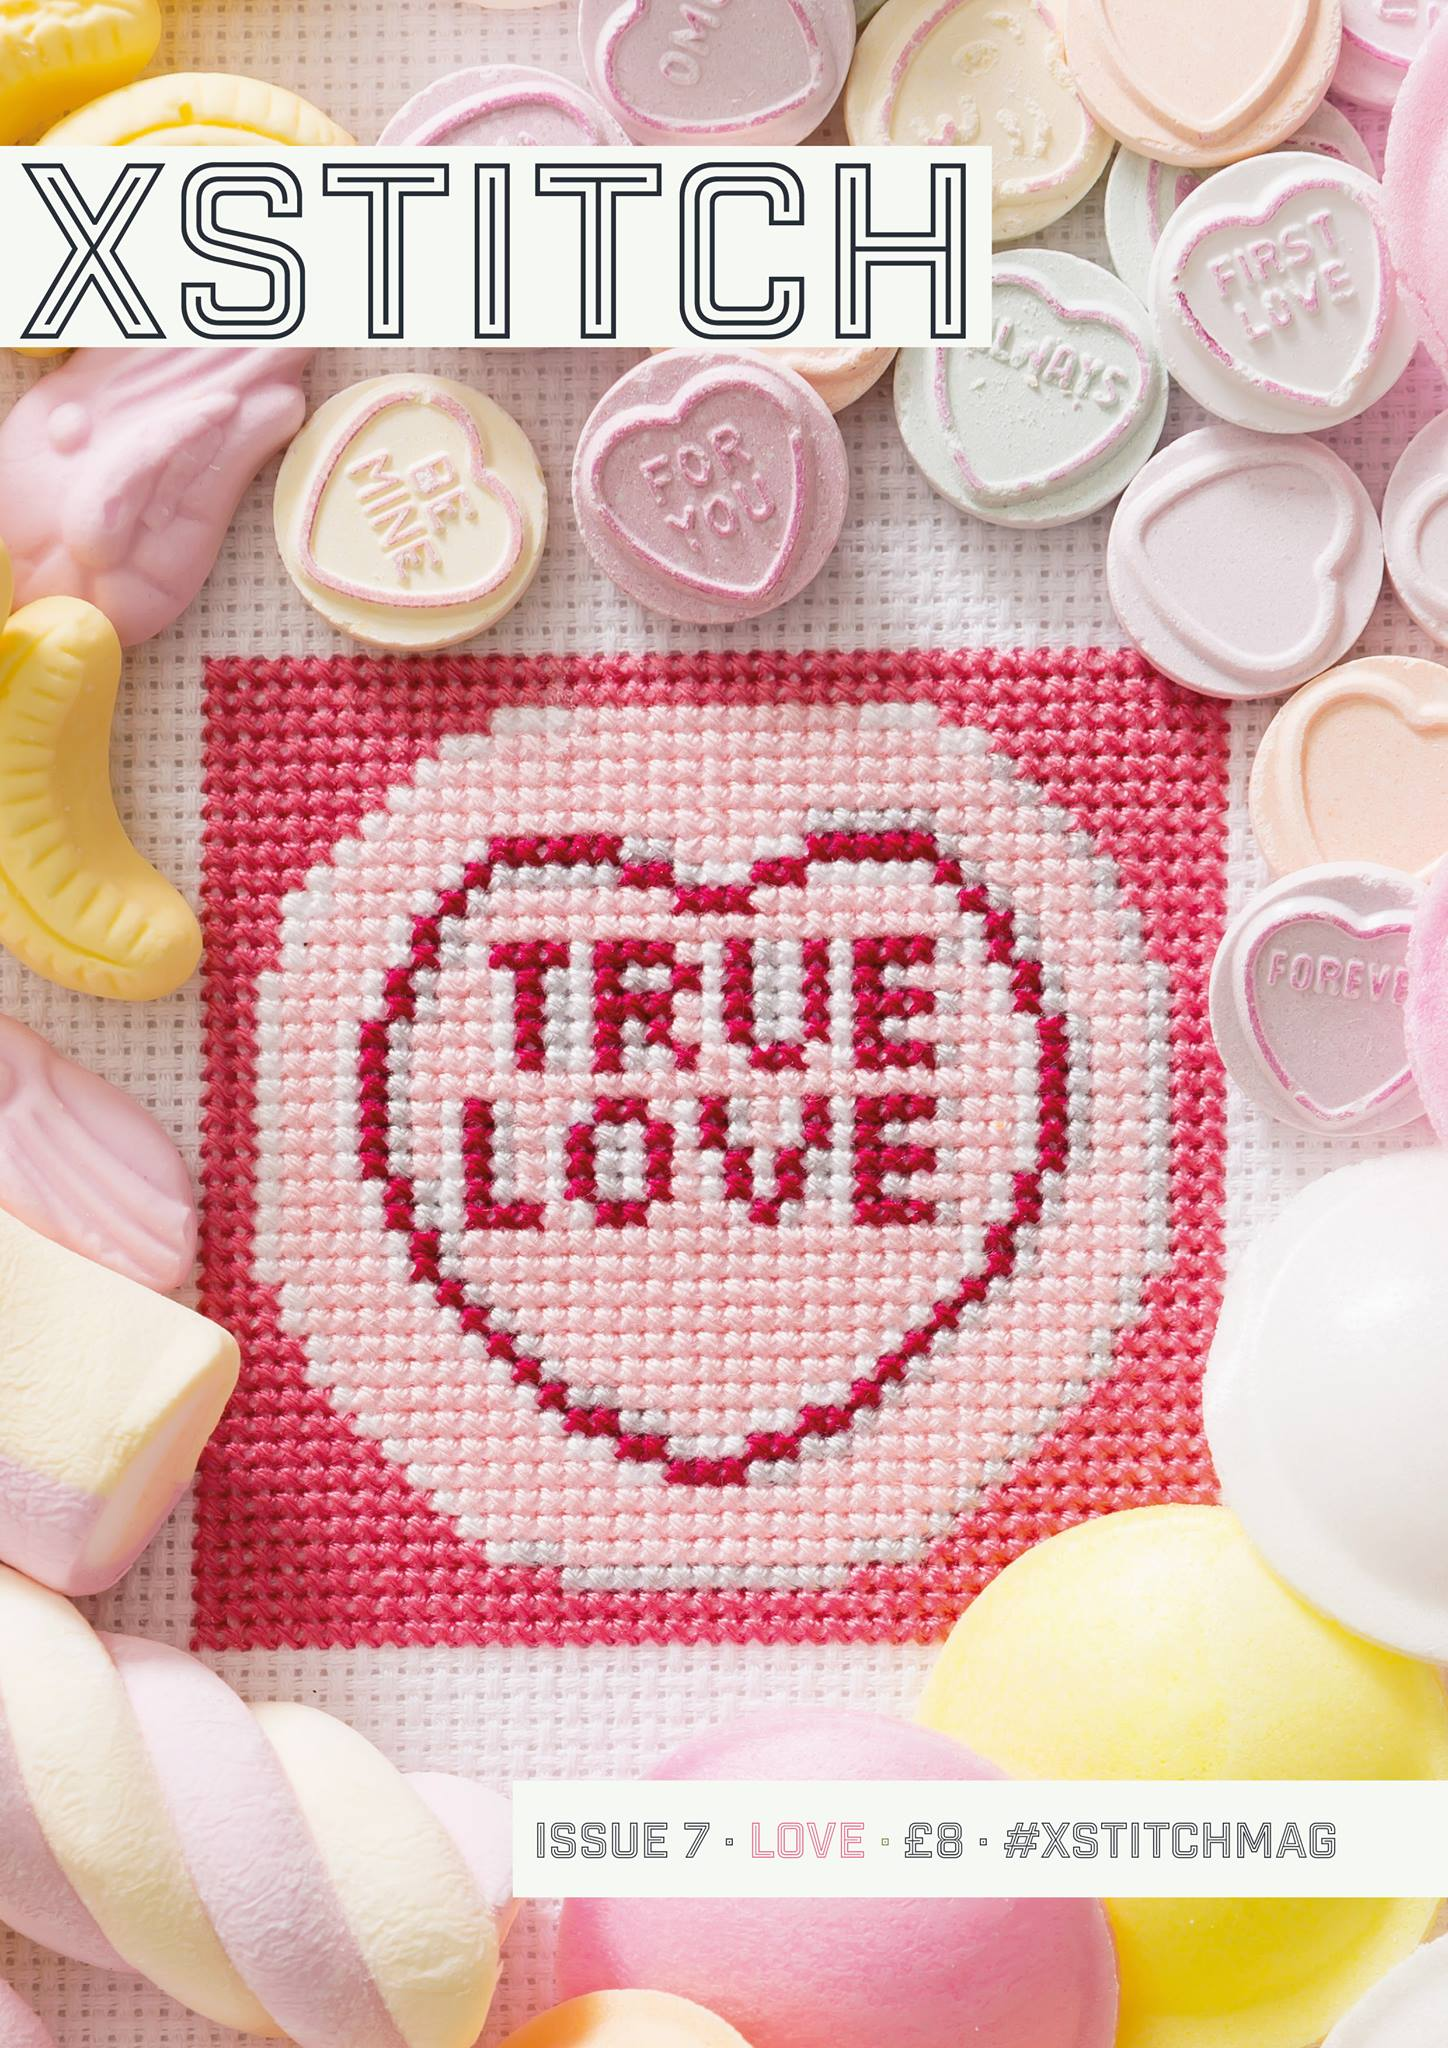 Xstitch Issue 7 Love featuring Lord Libidan